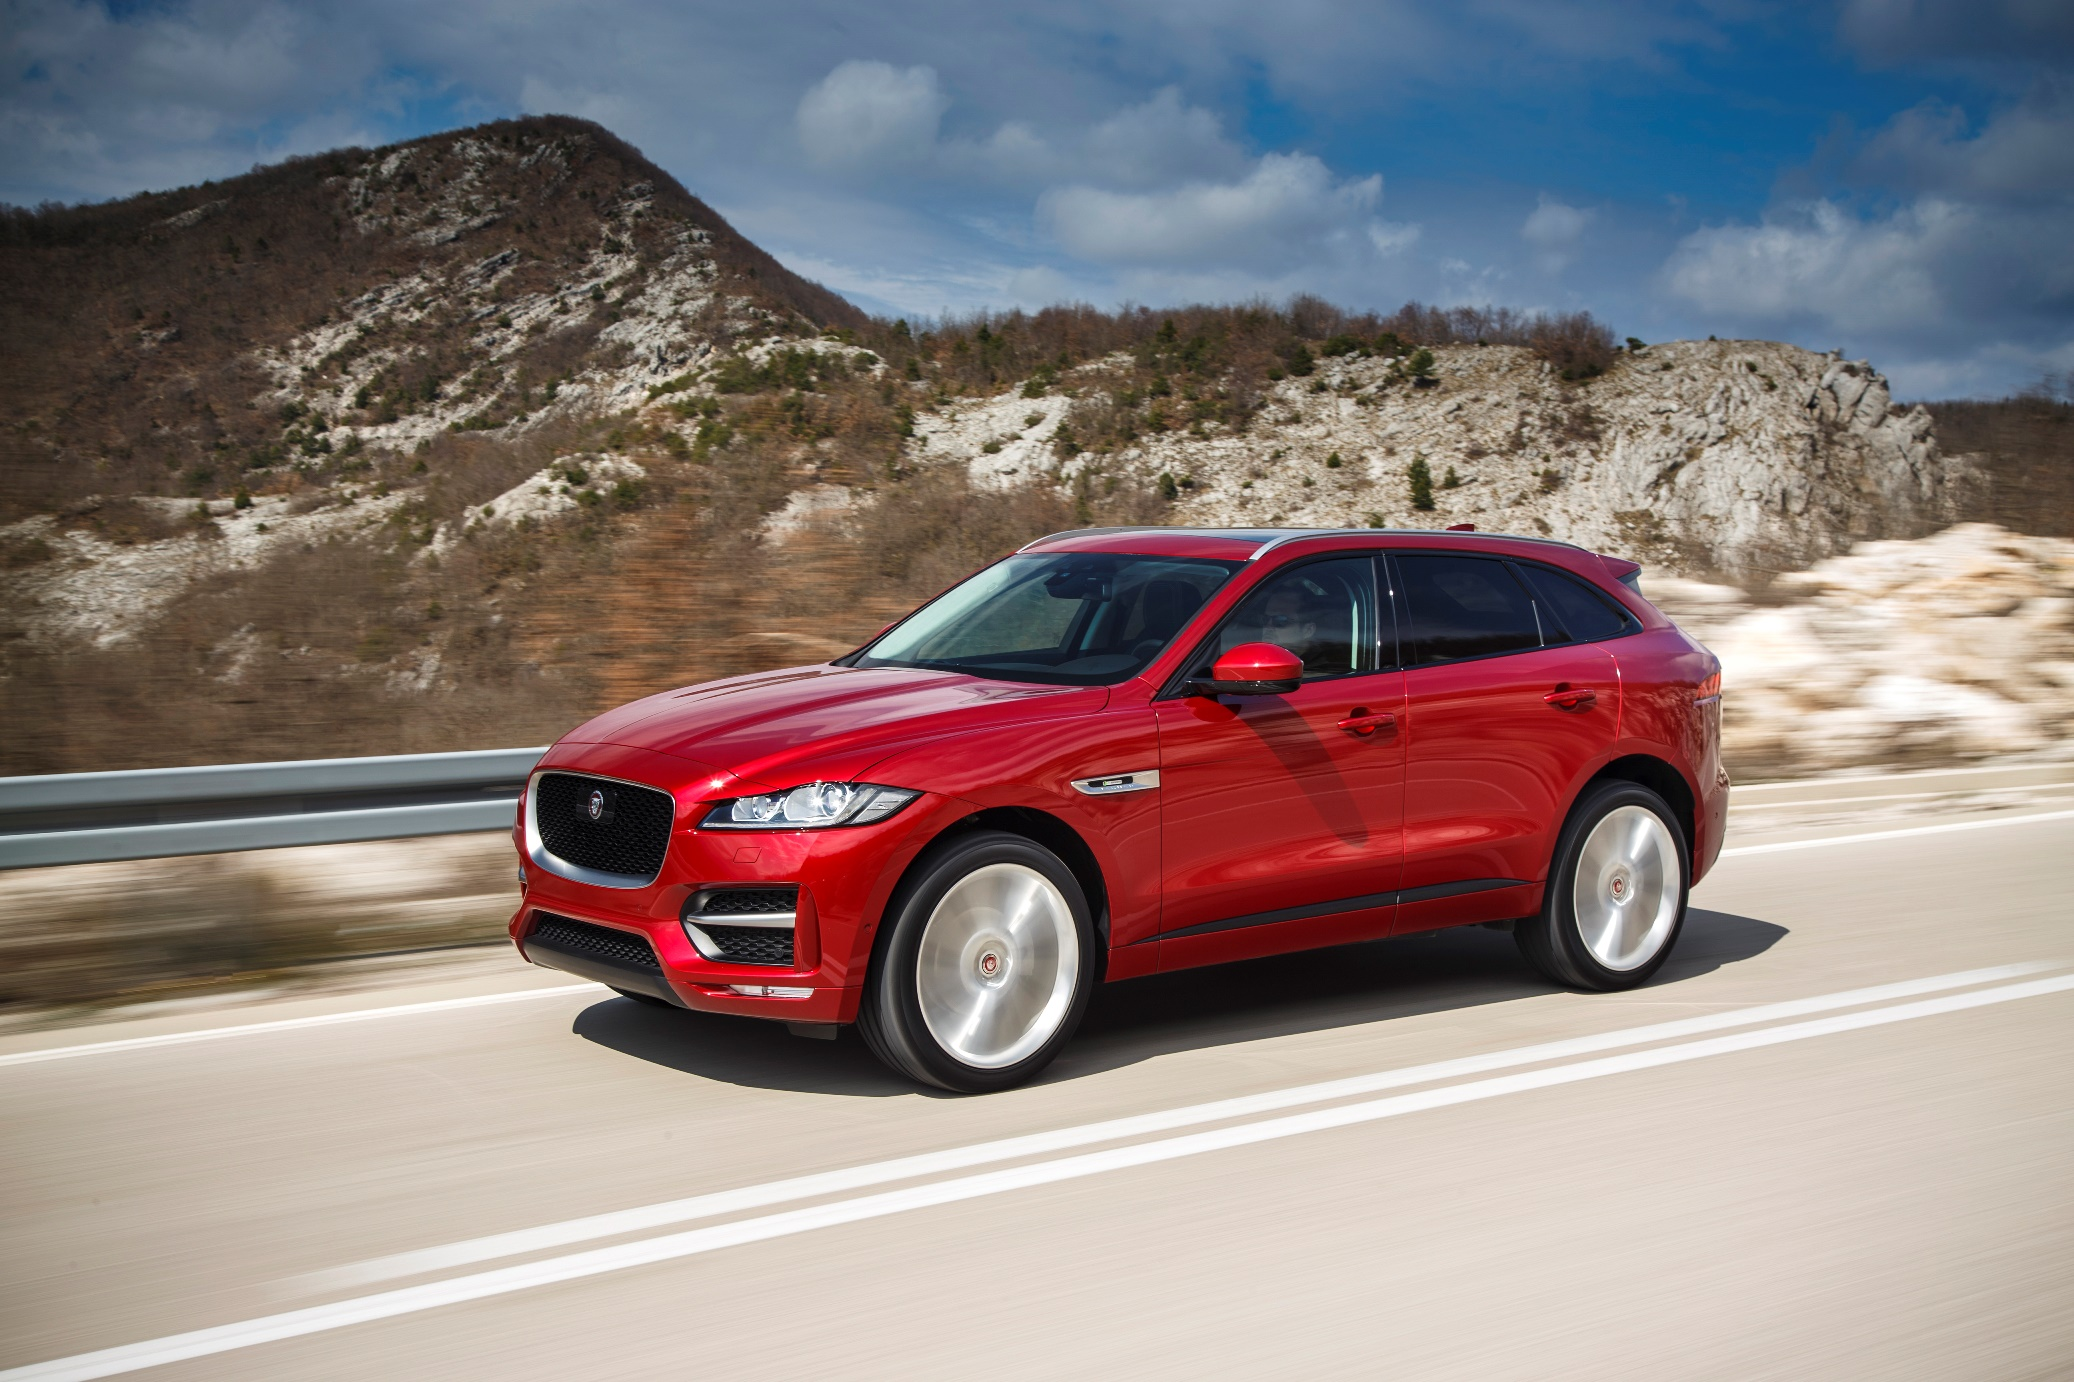 all-new-jaguar-f-pace_front-side